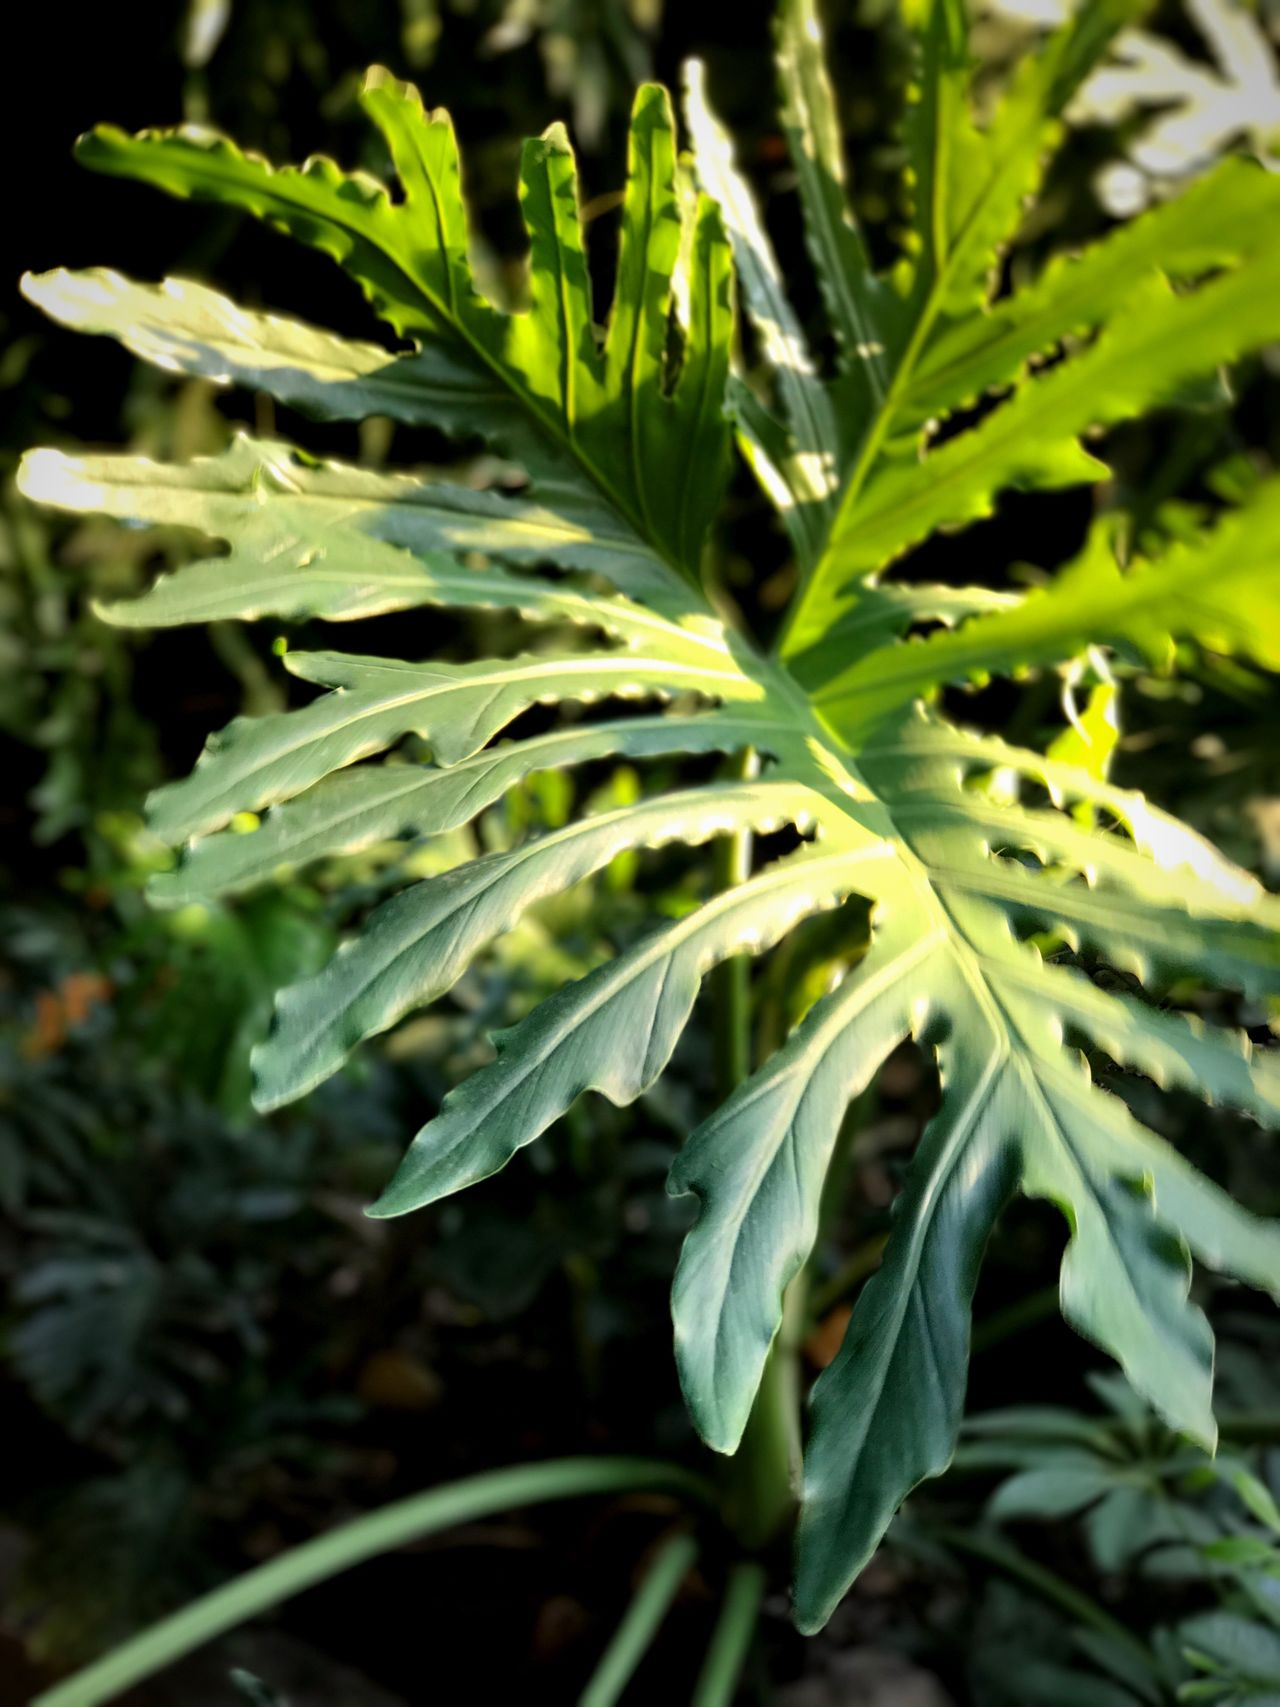 Green Plant Green Leaves Green Leaf Growth Leaf Plant Nature Green Color No People Close-up Outdoors Day Freshness